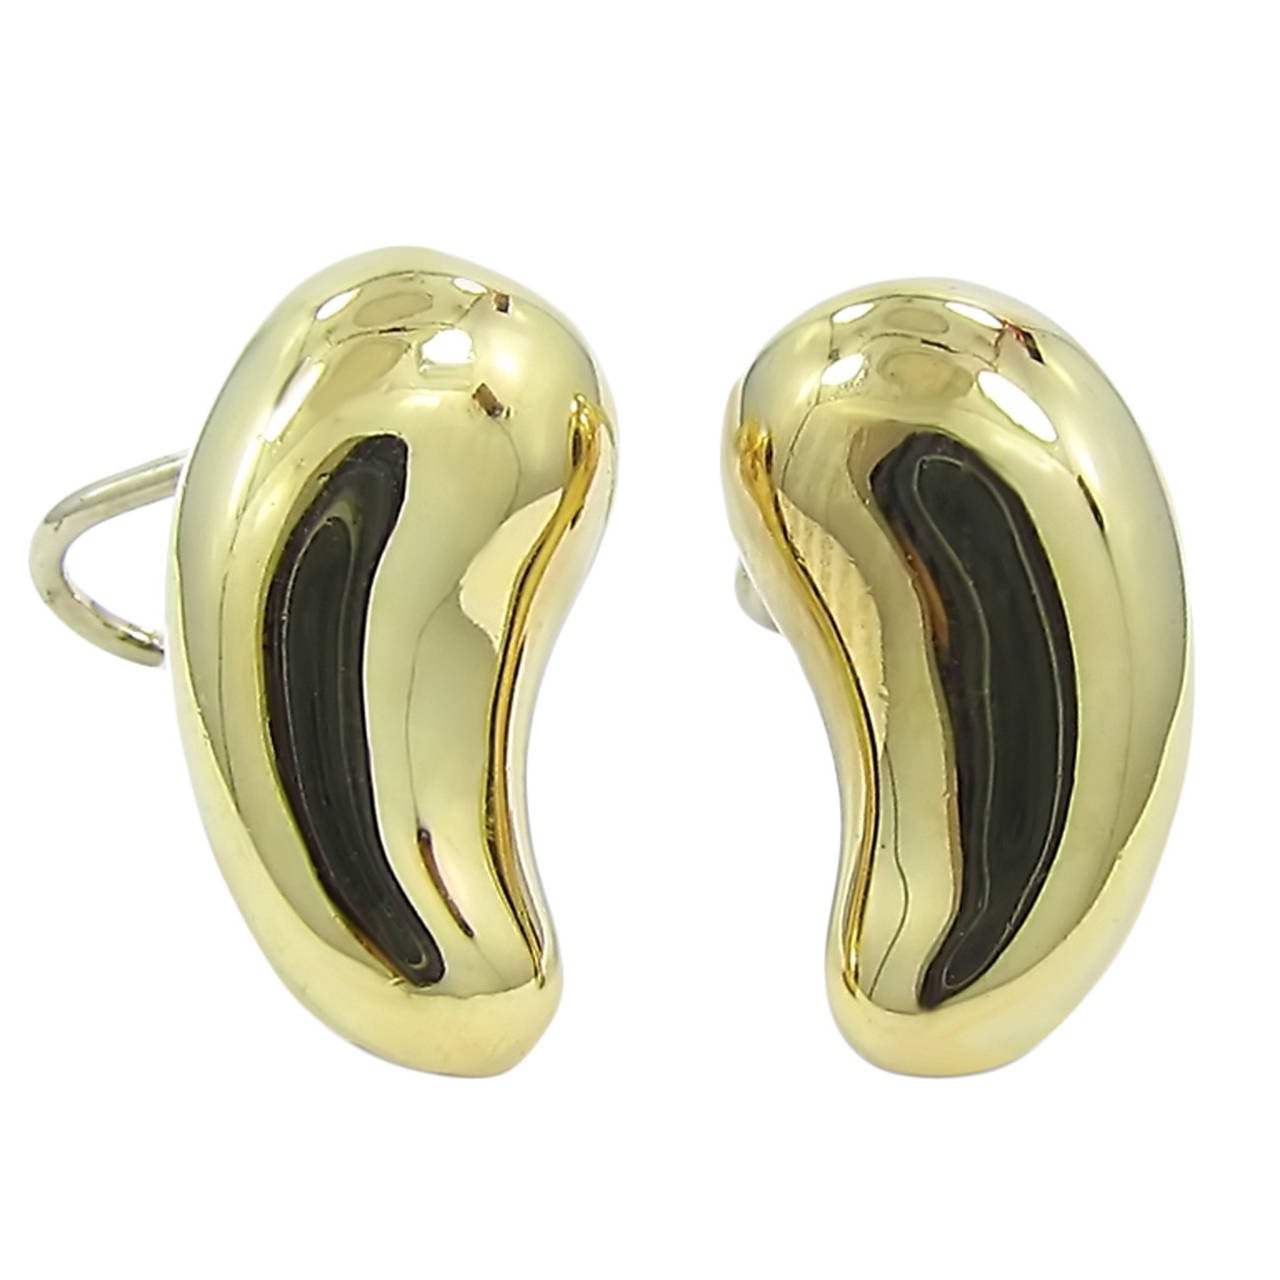 "Tiffany & Co. Elsa Peretti Gold ""Bean"" Earrings"